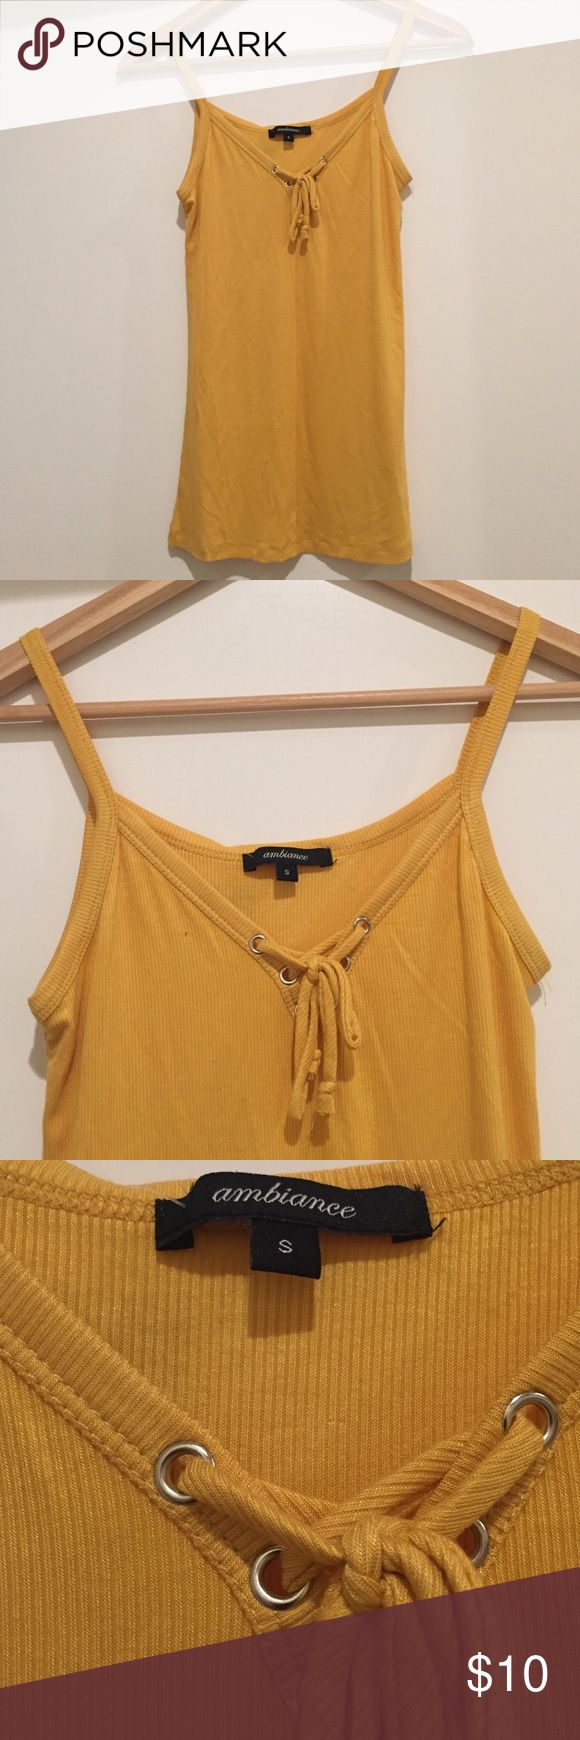 Ambiance Women's Yellow Tank Size Small Ambiance Women's Mustard Yellow Tank Top. Size Small, fits true to size. Brand new. Ambiance Apparel Tops Tank Tops